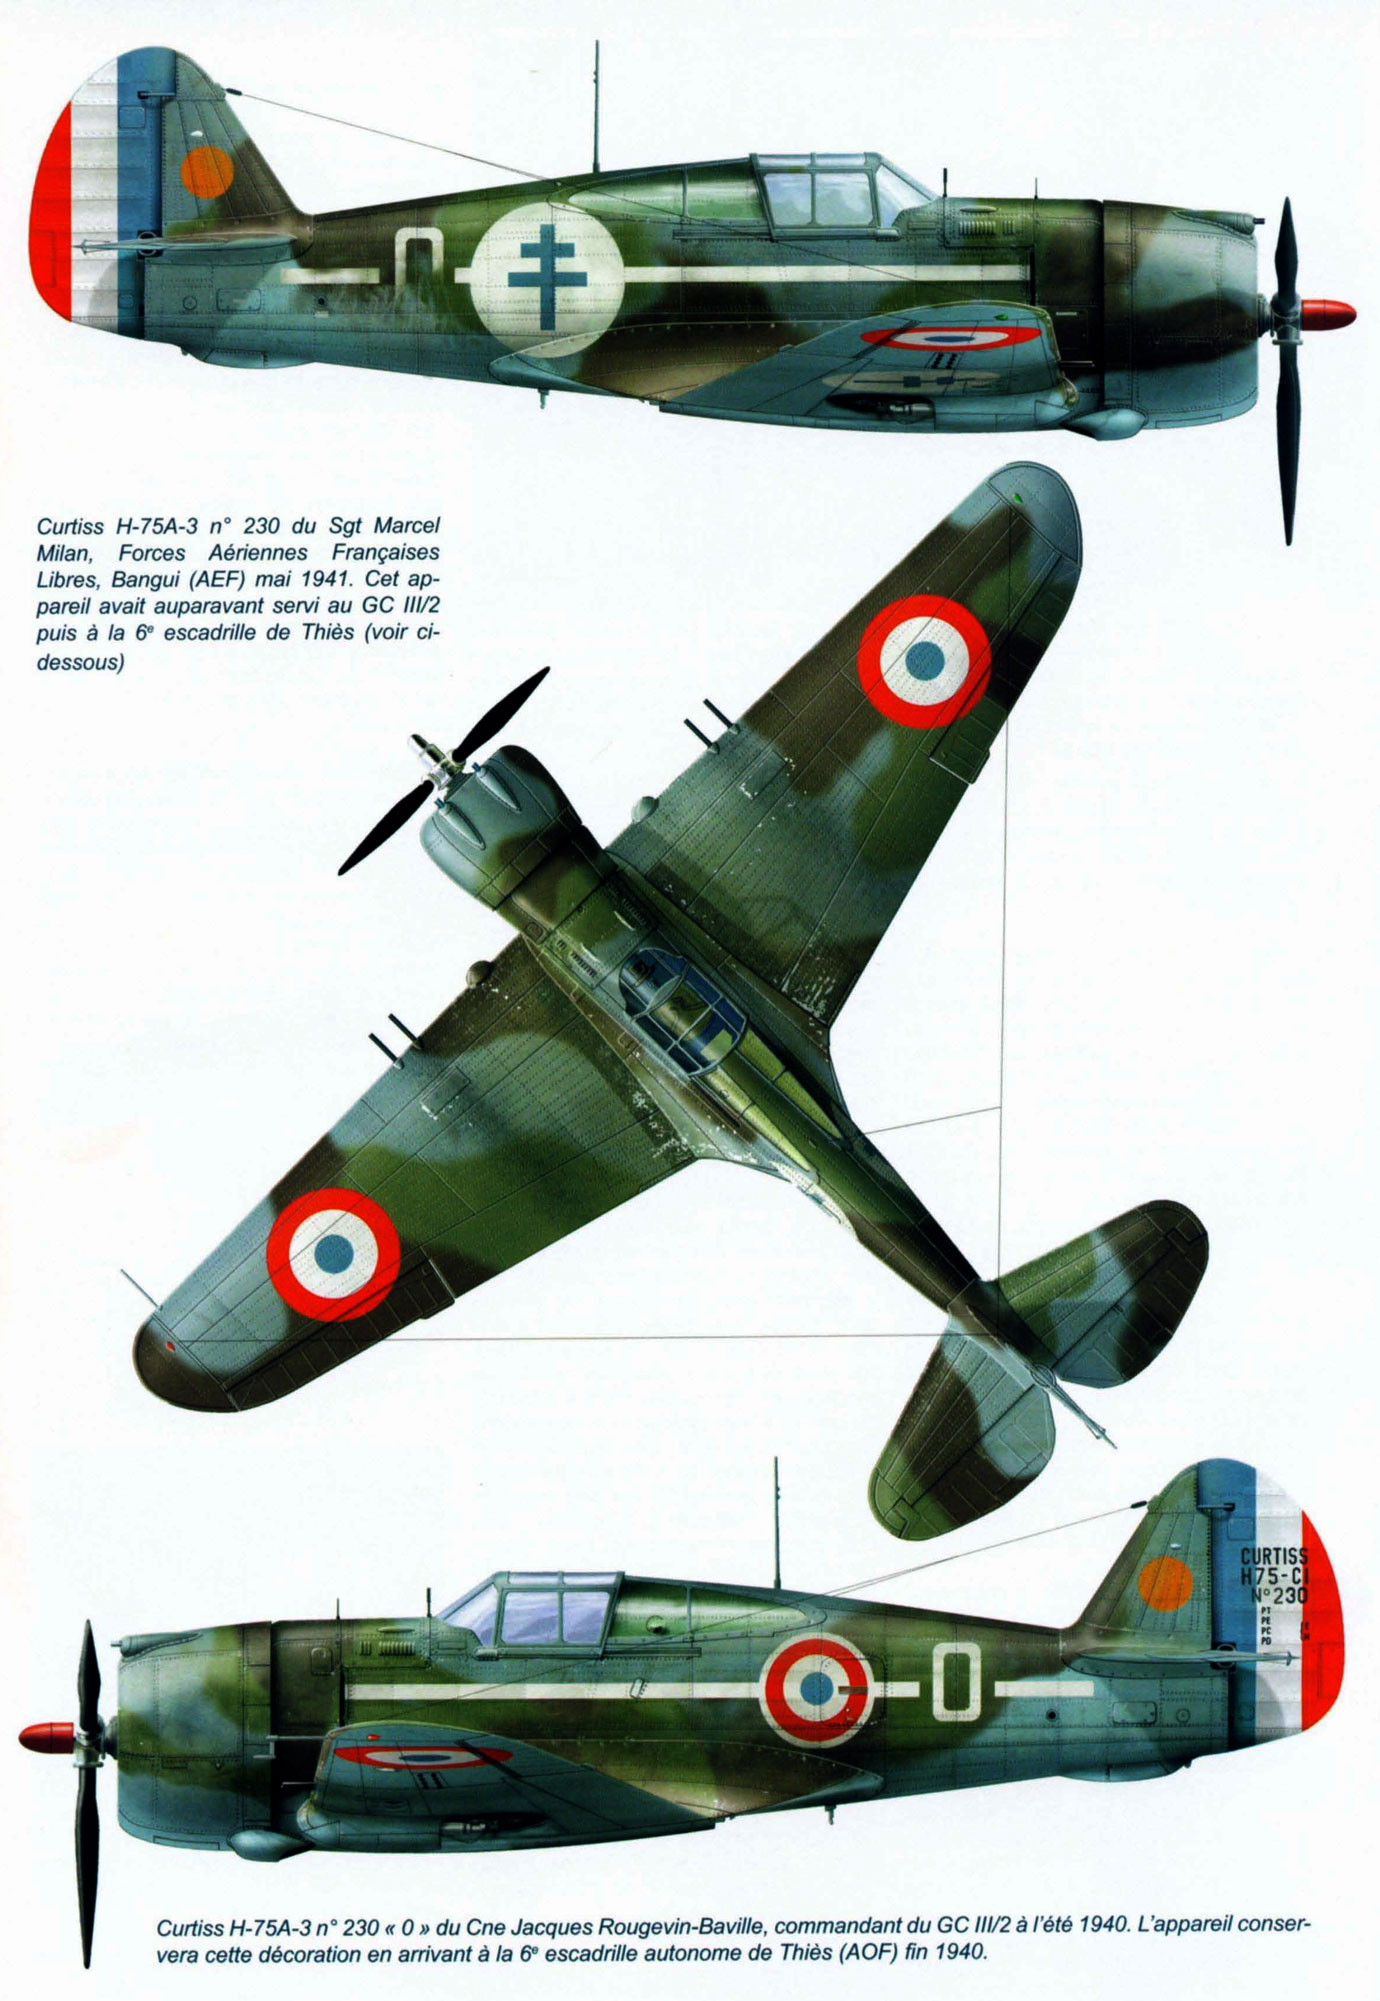 curtiss - AZ 1/72 ...  H-75c1 de chez CURTISS - avion FAFL de MILAN... Curtiss-Hawk-H-75A3-French-Airforce-GCIII.2-No230-Jacques-Rougevin-Baville-France-1940-0A